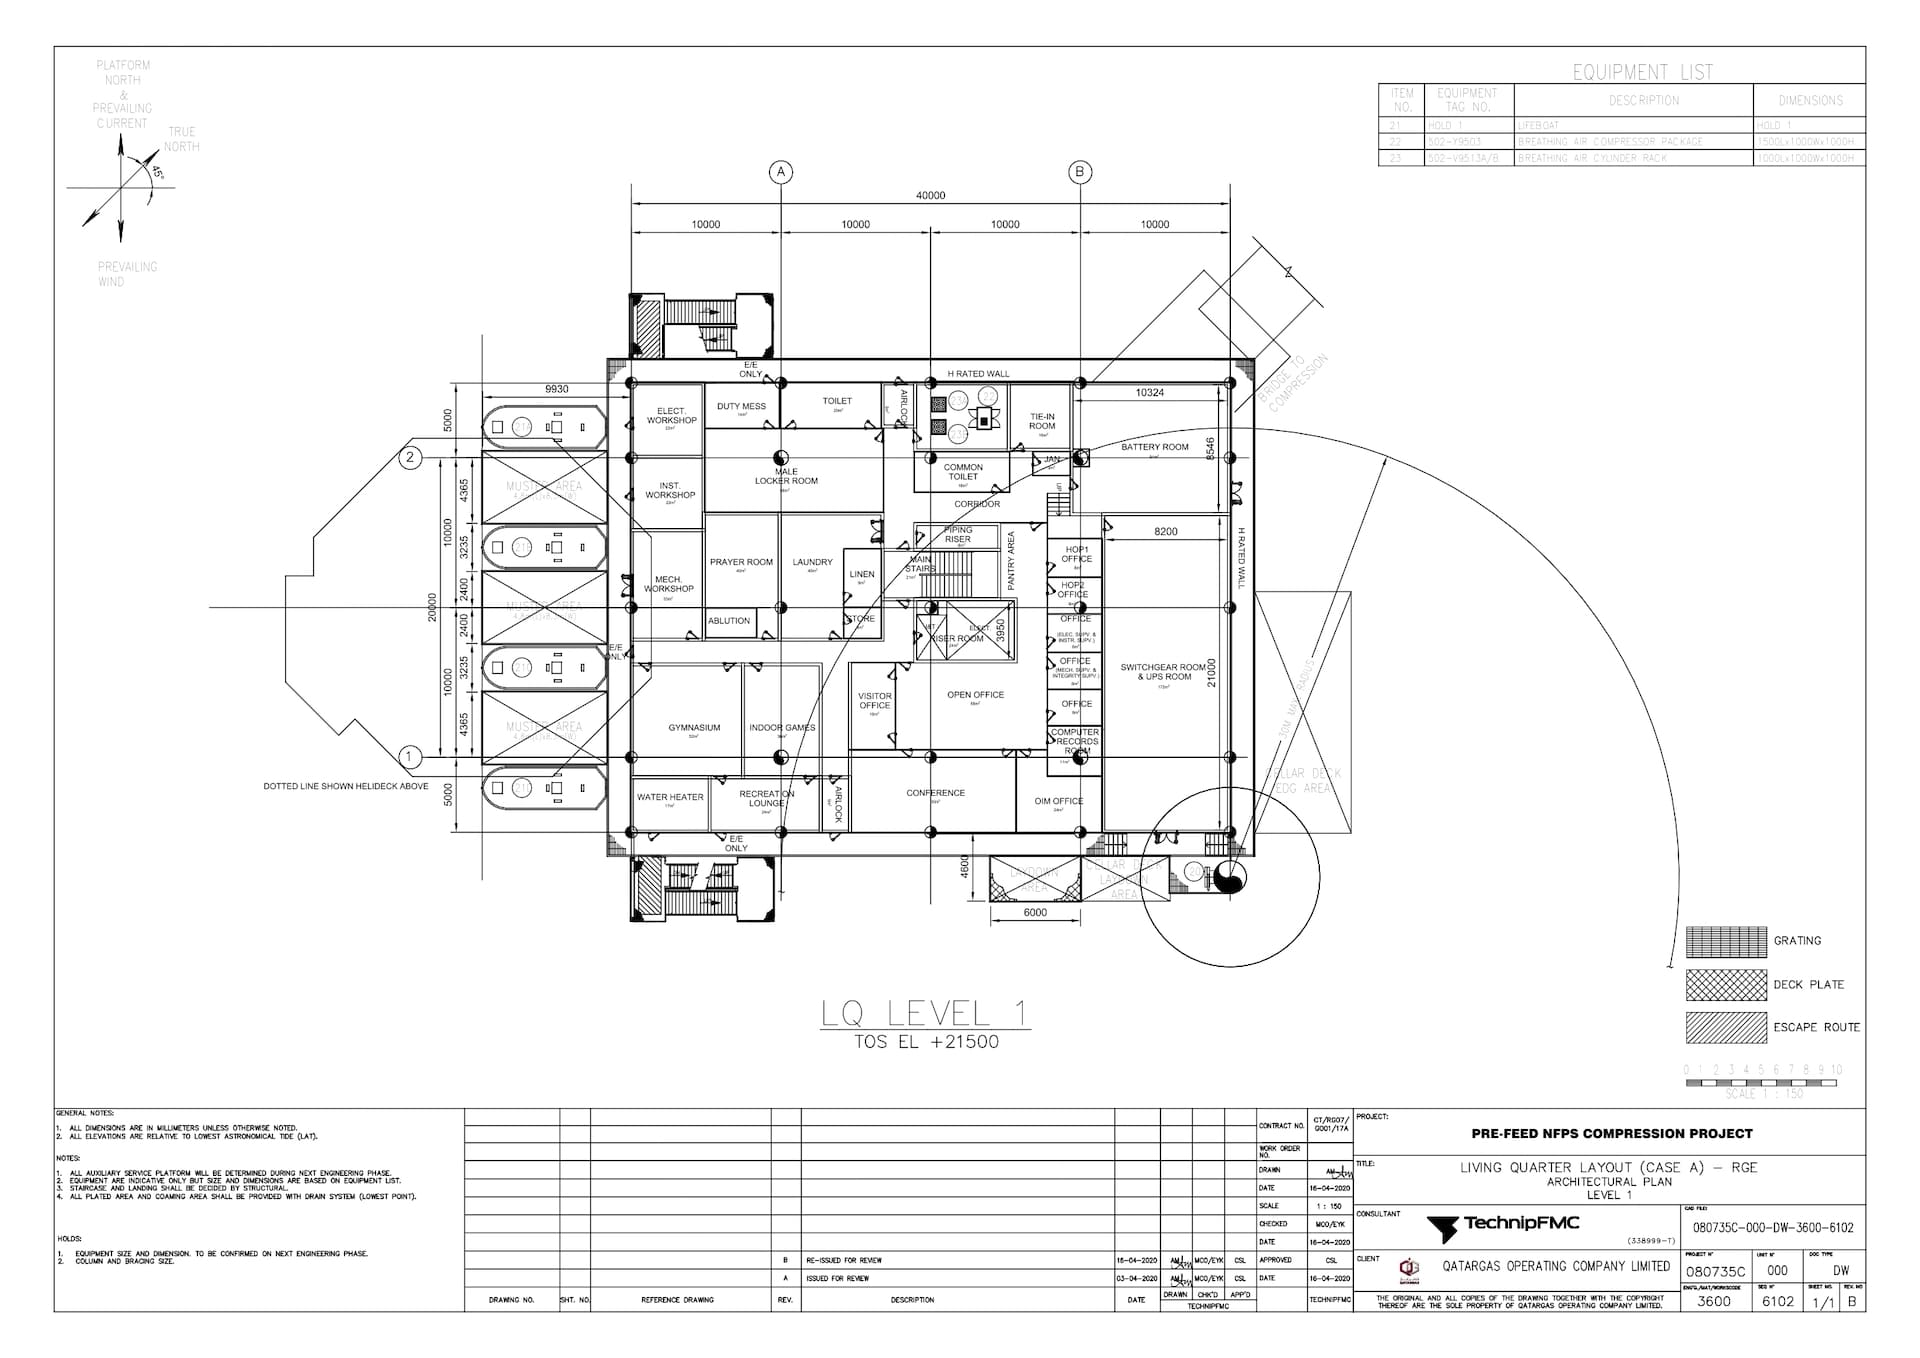 PRE-FEED-NFPS-080735C-000-DW-3600-6102_Rev B LQ Layout (Case A) - RGE - Architectural Plan - Level 1_page-0001